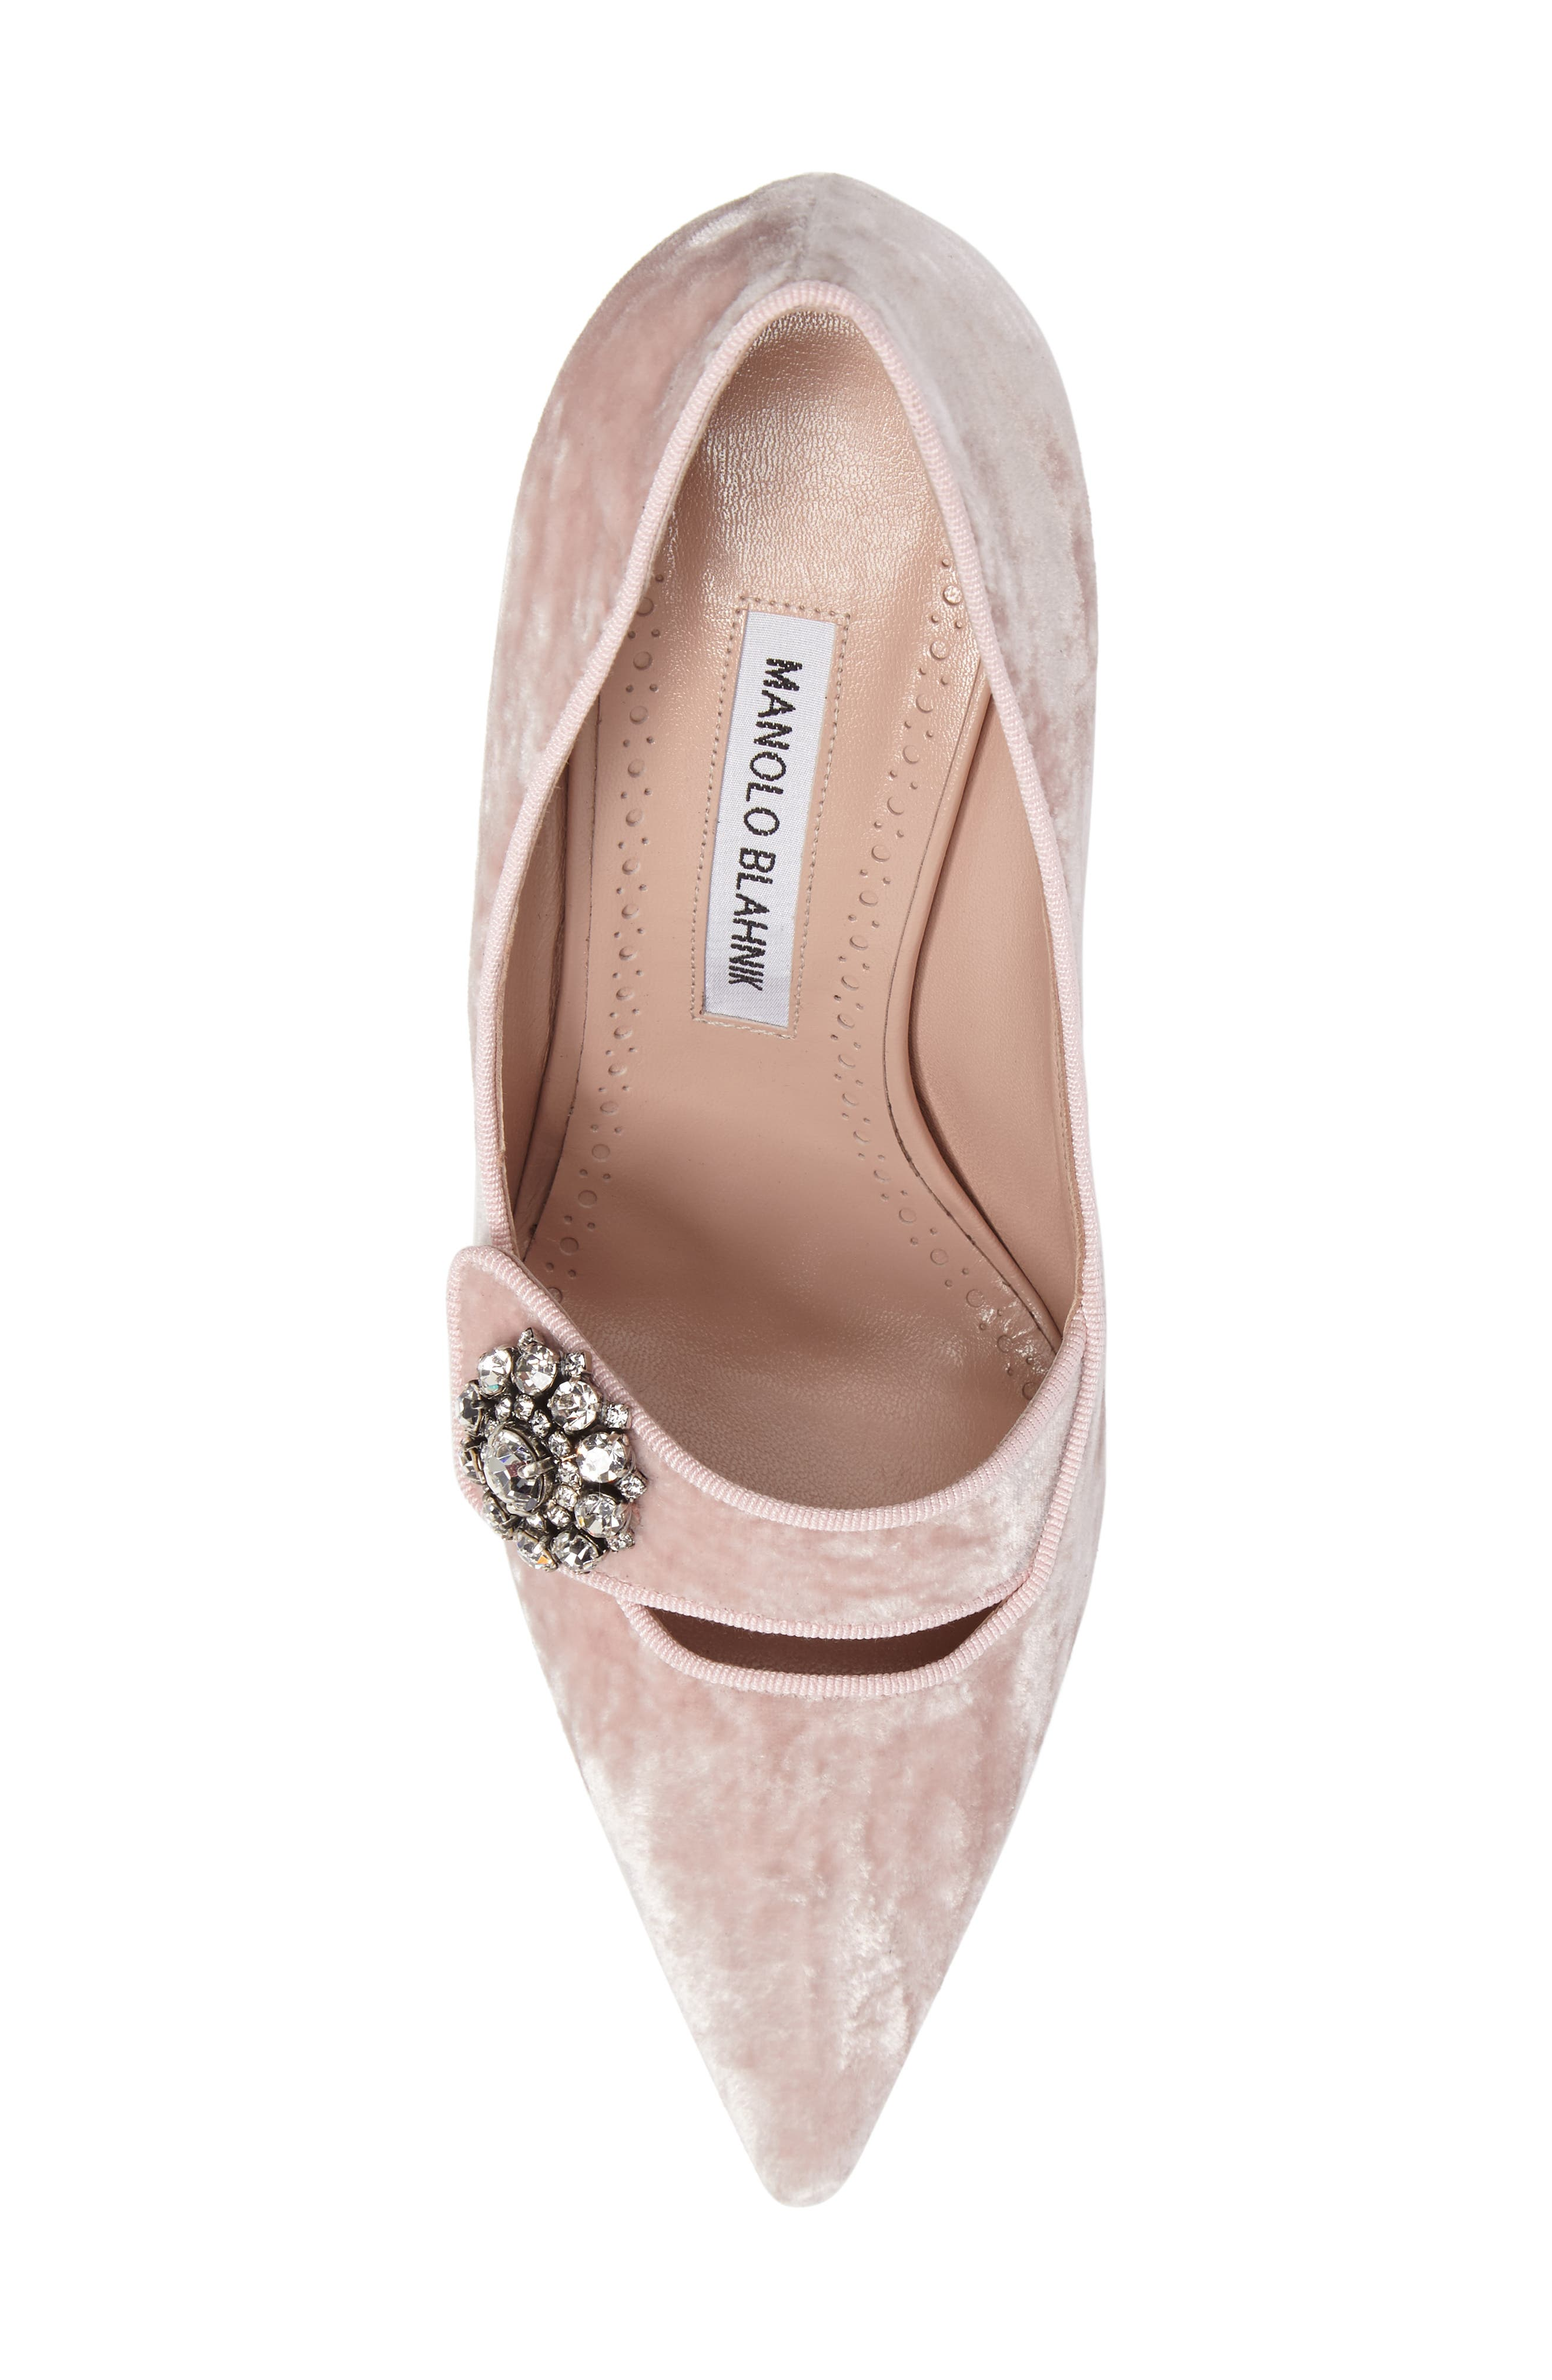 Decebalo Pump,                             Alternate thumbnail 5, color,                             Blush Velvet